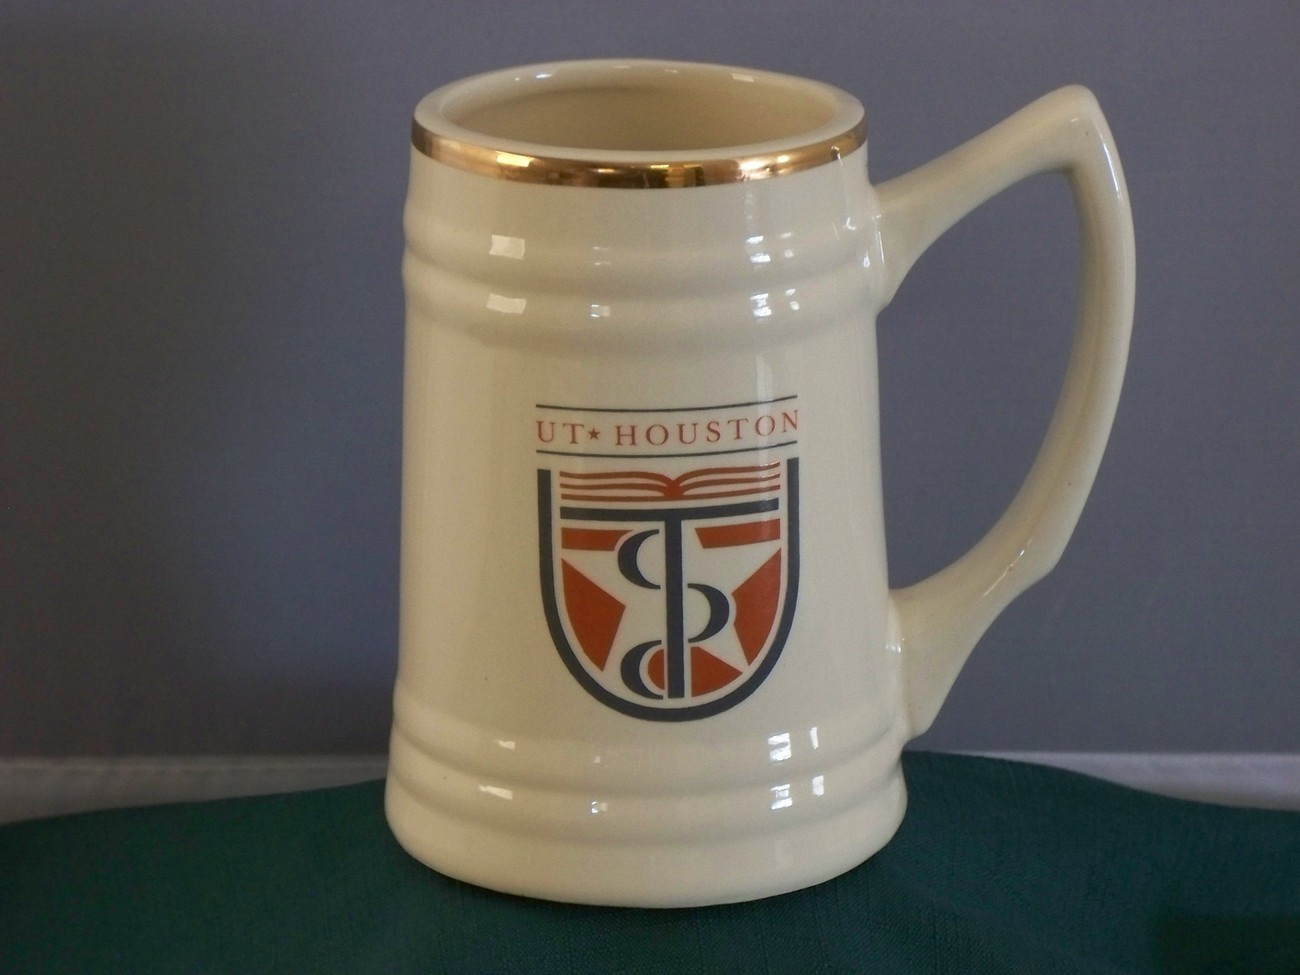 UT Houston 28 Oz Stein Mug Very Good Condition